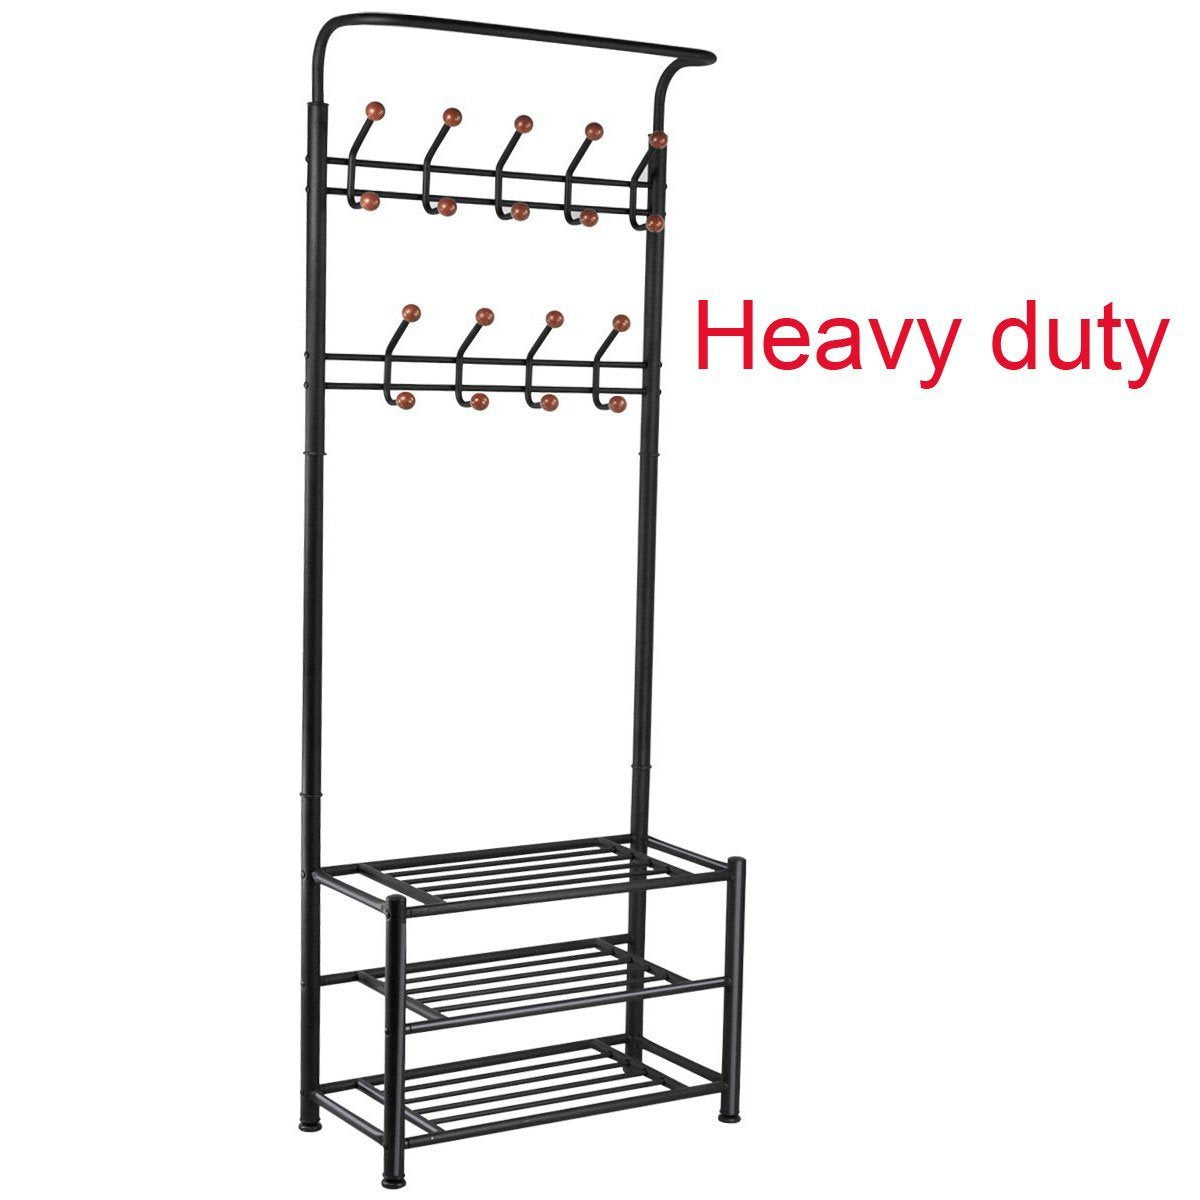 Budget fyheart heavy duty coat shoe entryway rack with 3 tier shoe bench shelves organizer with coat hat umbrella rack 18 hooks for hallway entryway metal black